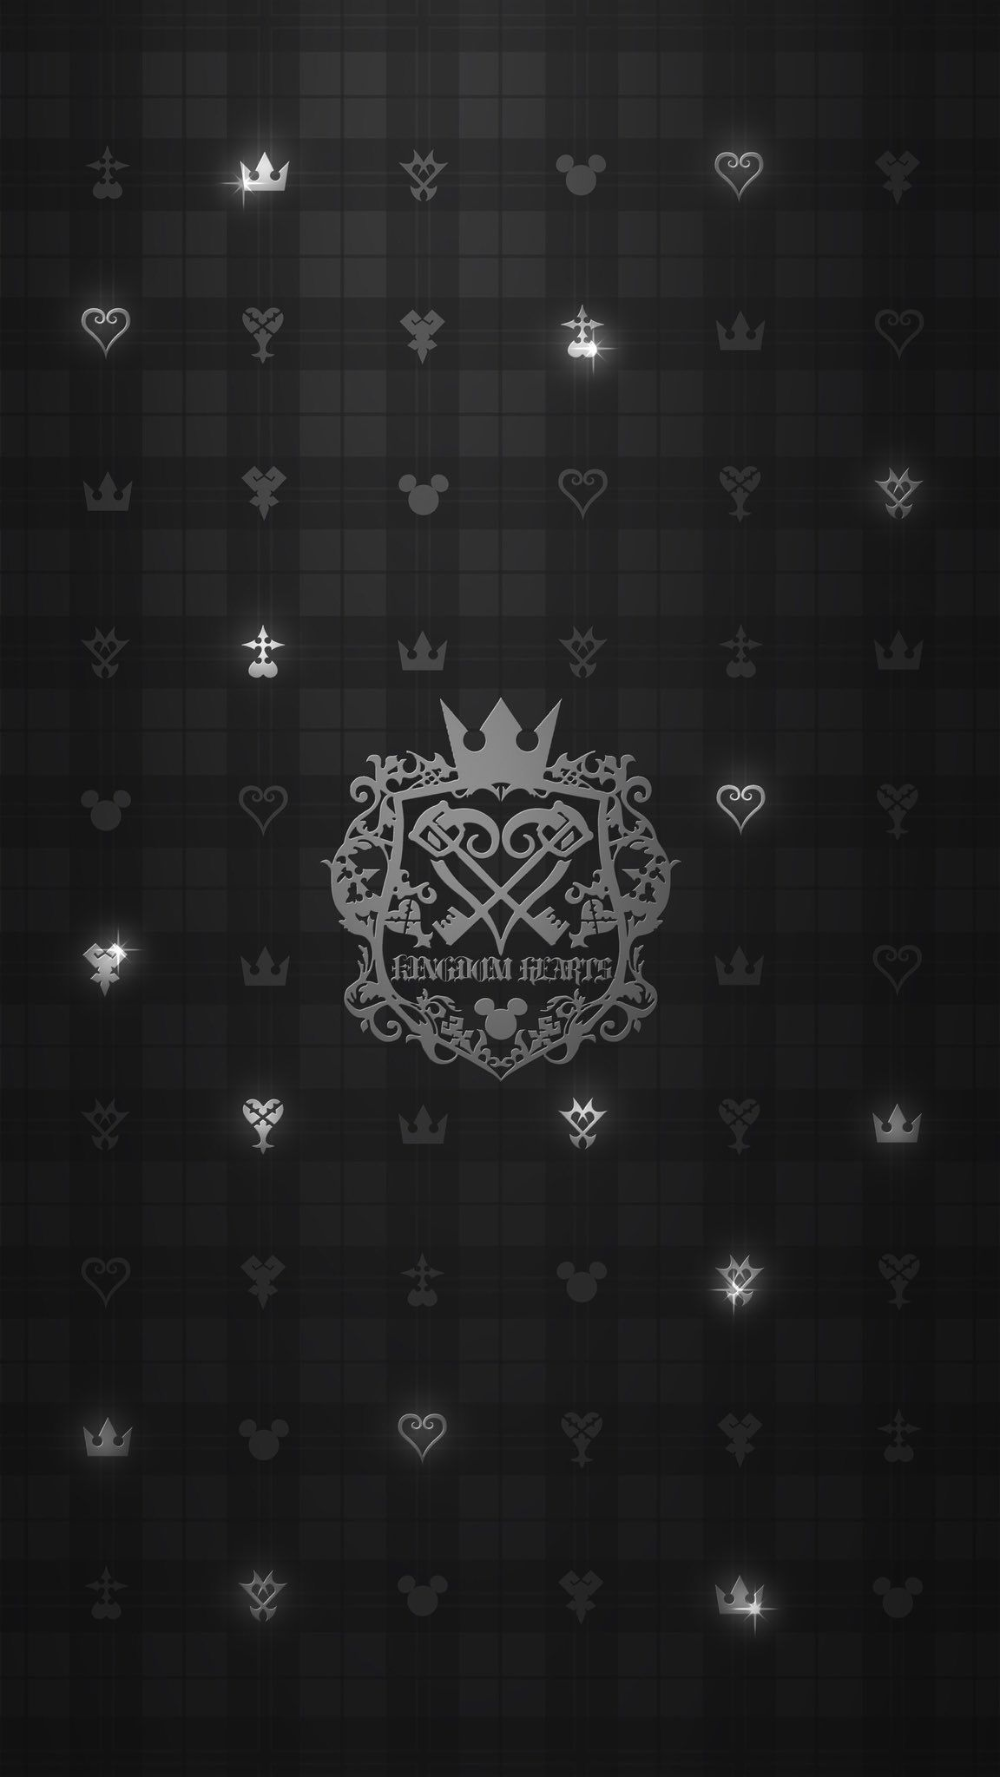 Kingdom Hearts 3 Wallpapers Wallpaper Cave In 2020 Kingdom Hearts Wallpaper Kingdom Hearts Fanart Kingdom Hearts Wallpaper Iphone